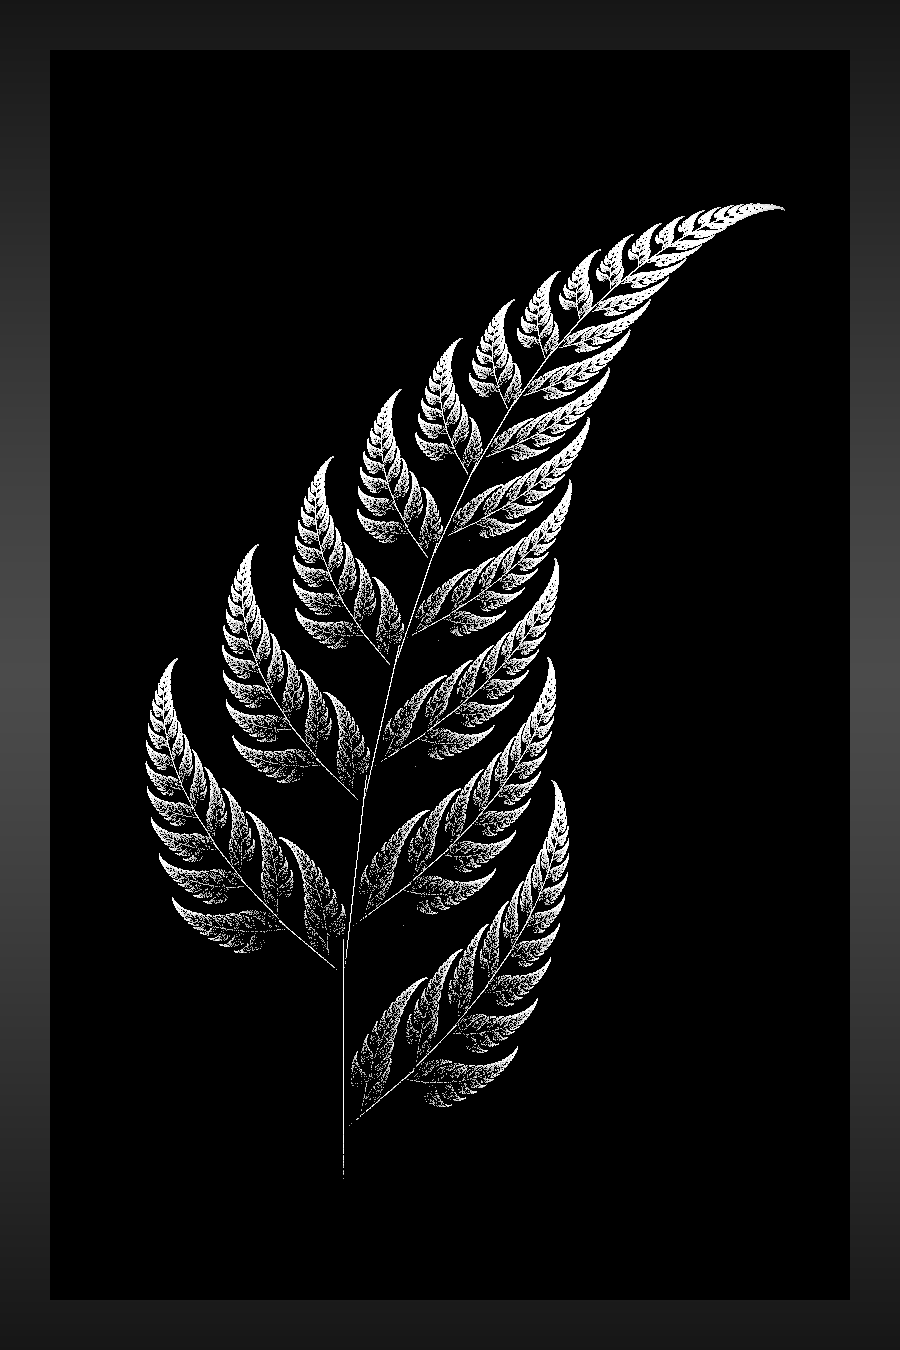 4ef2db18b Interesting twist on the silver fern. How to fade the black without looking  tacky though.